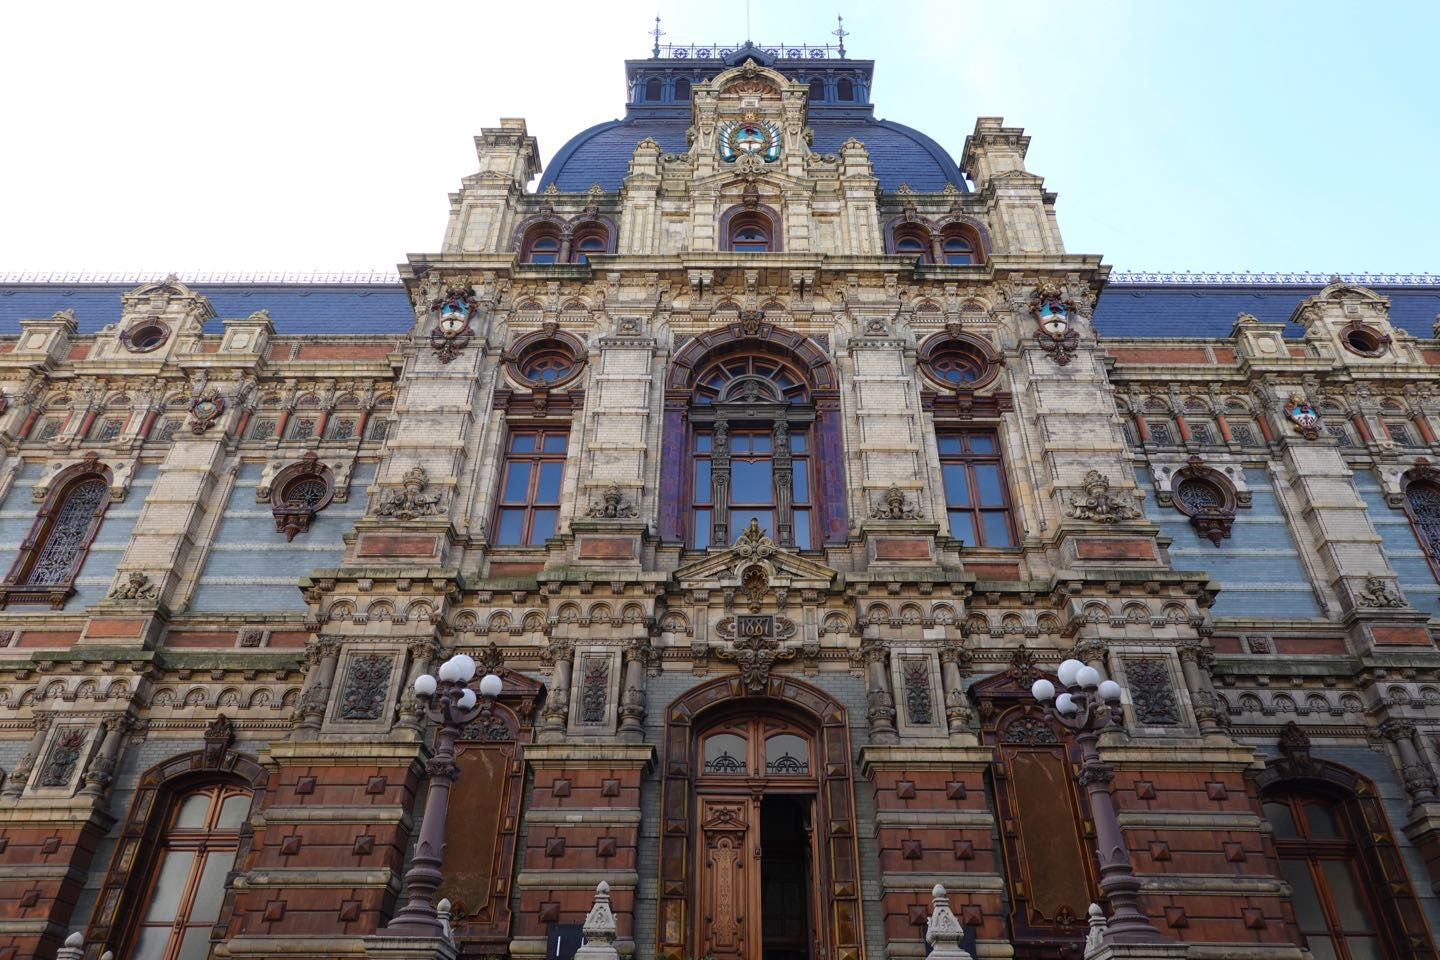 Palacio de Aguas Corrientes one of the most beautiful and least visited places in Buenos Aires.